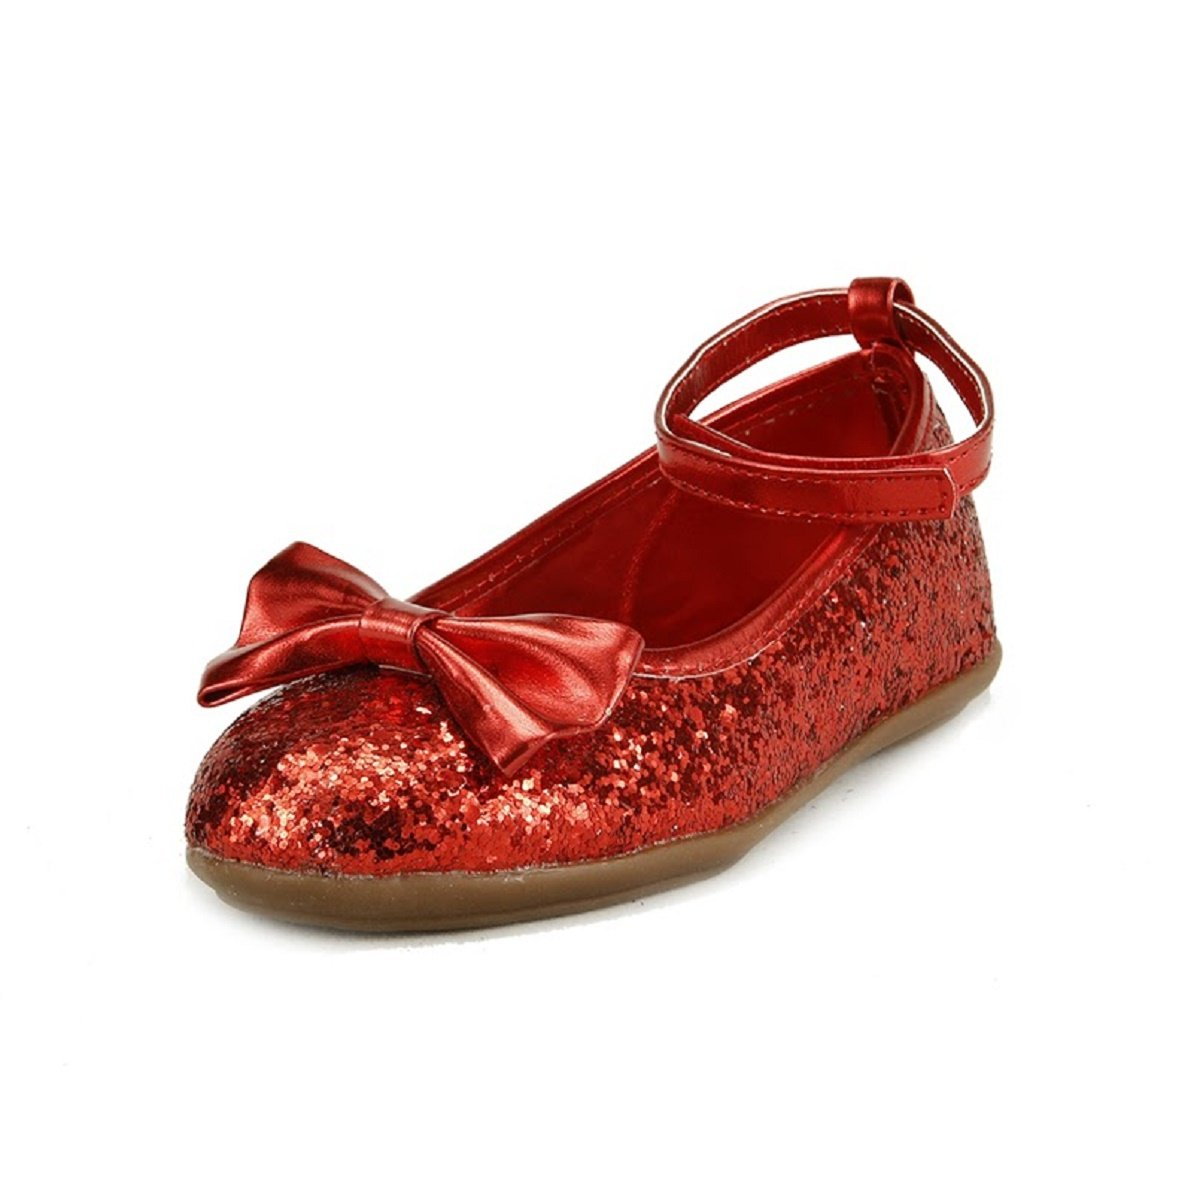 Girl's Sparkly Wedding Party Dress Shoes 4 Colors Ankle Wrap Toddler Size (7, red)